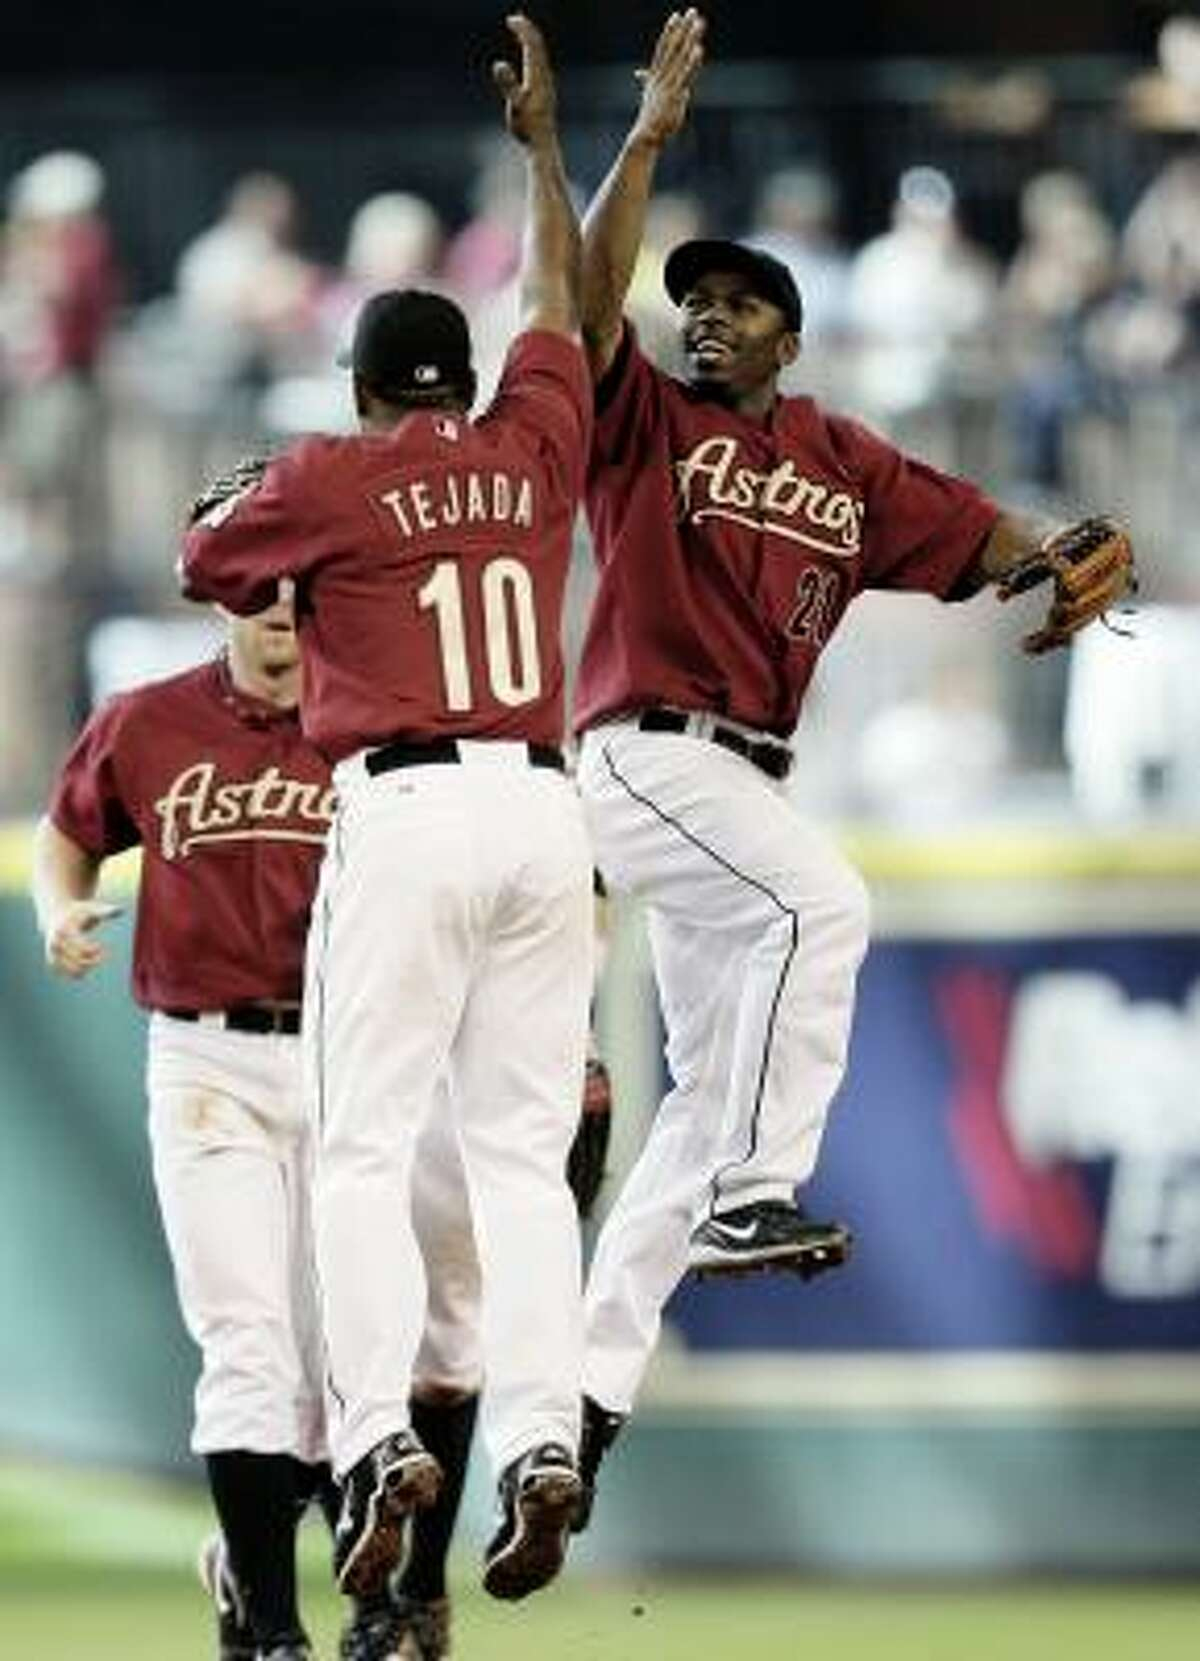 Astros shortstop Miguel Tejada (10) and Michael Bourn (21) celebrate after the final out of the series against the Padres.